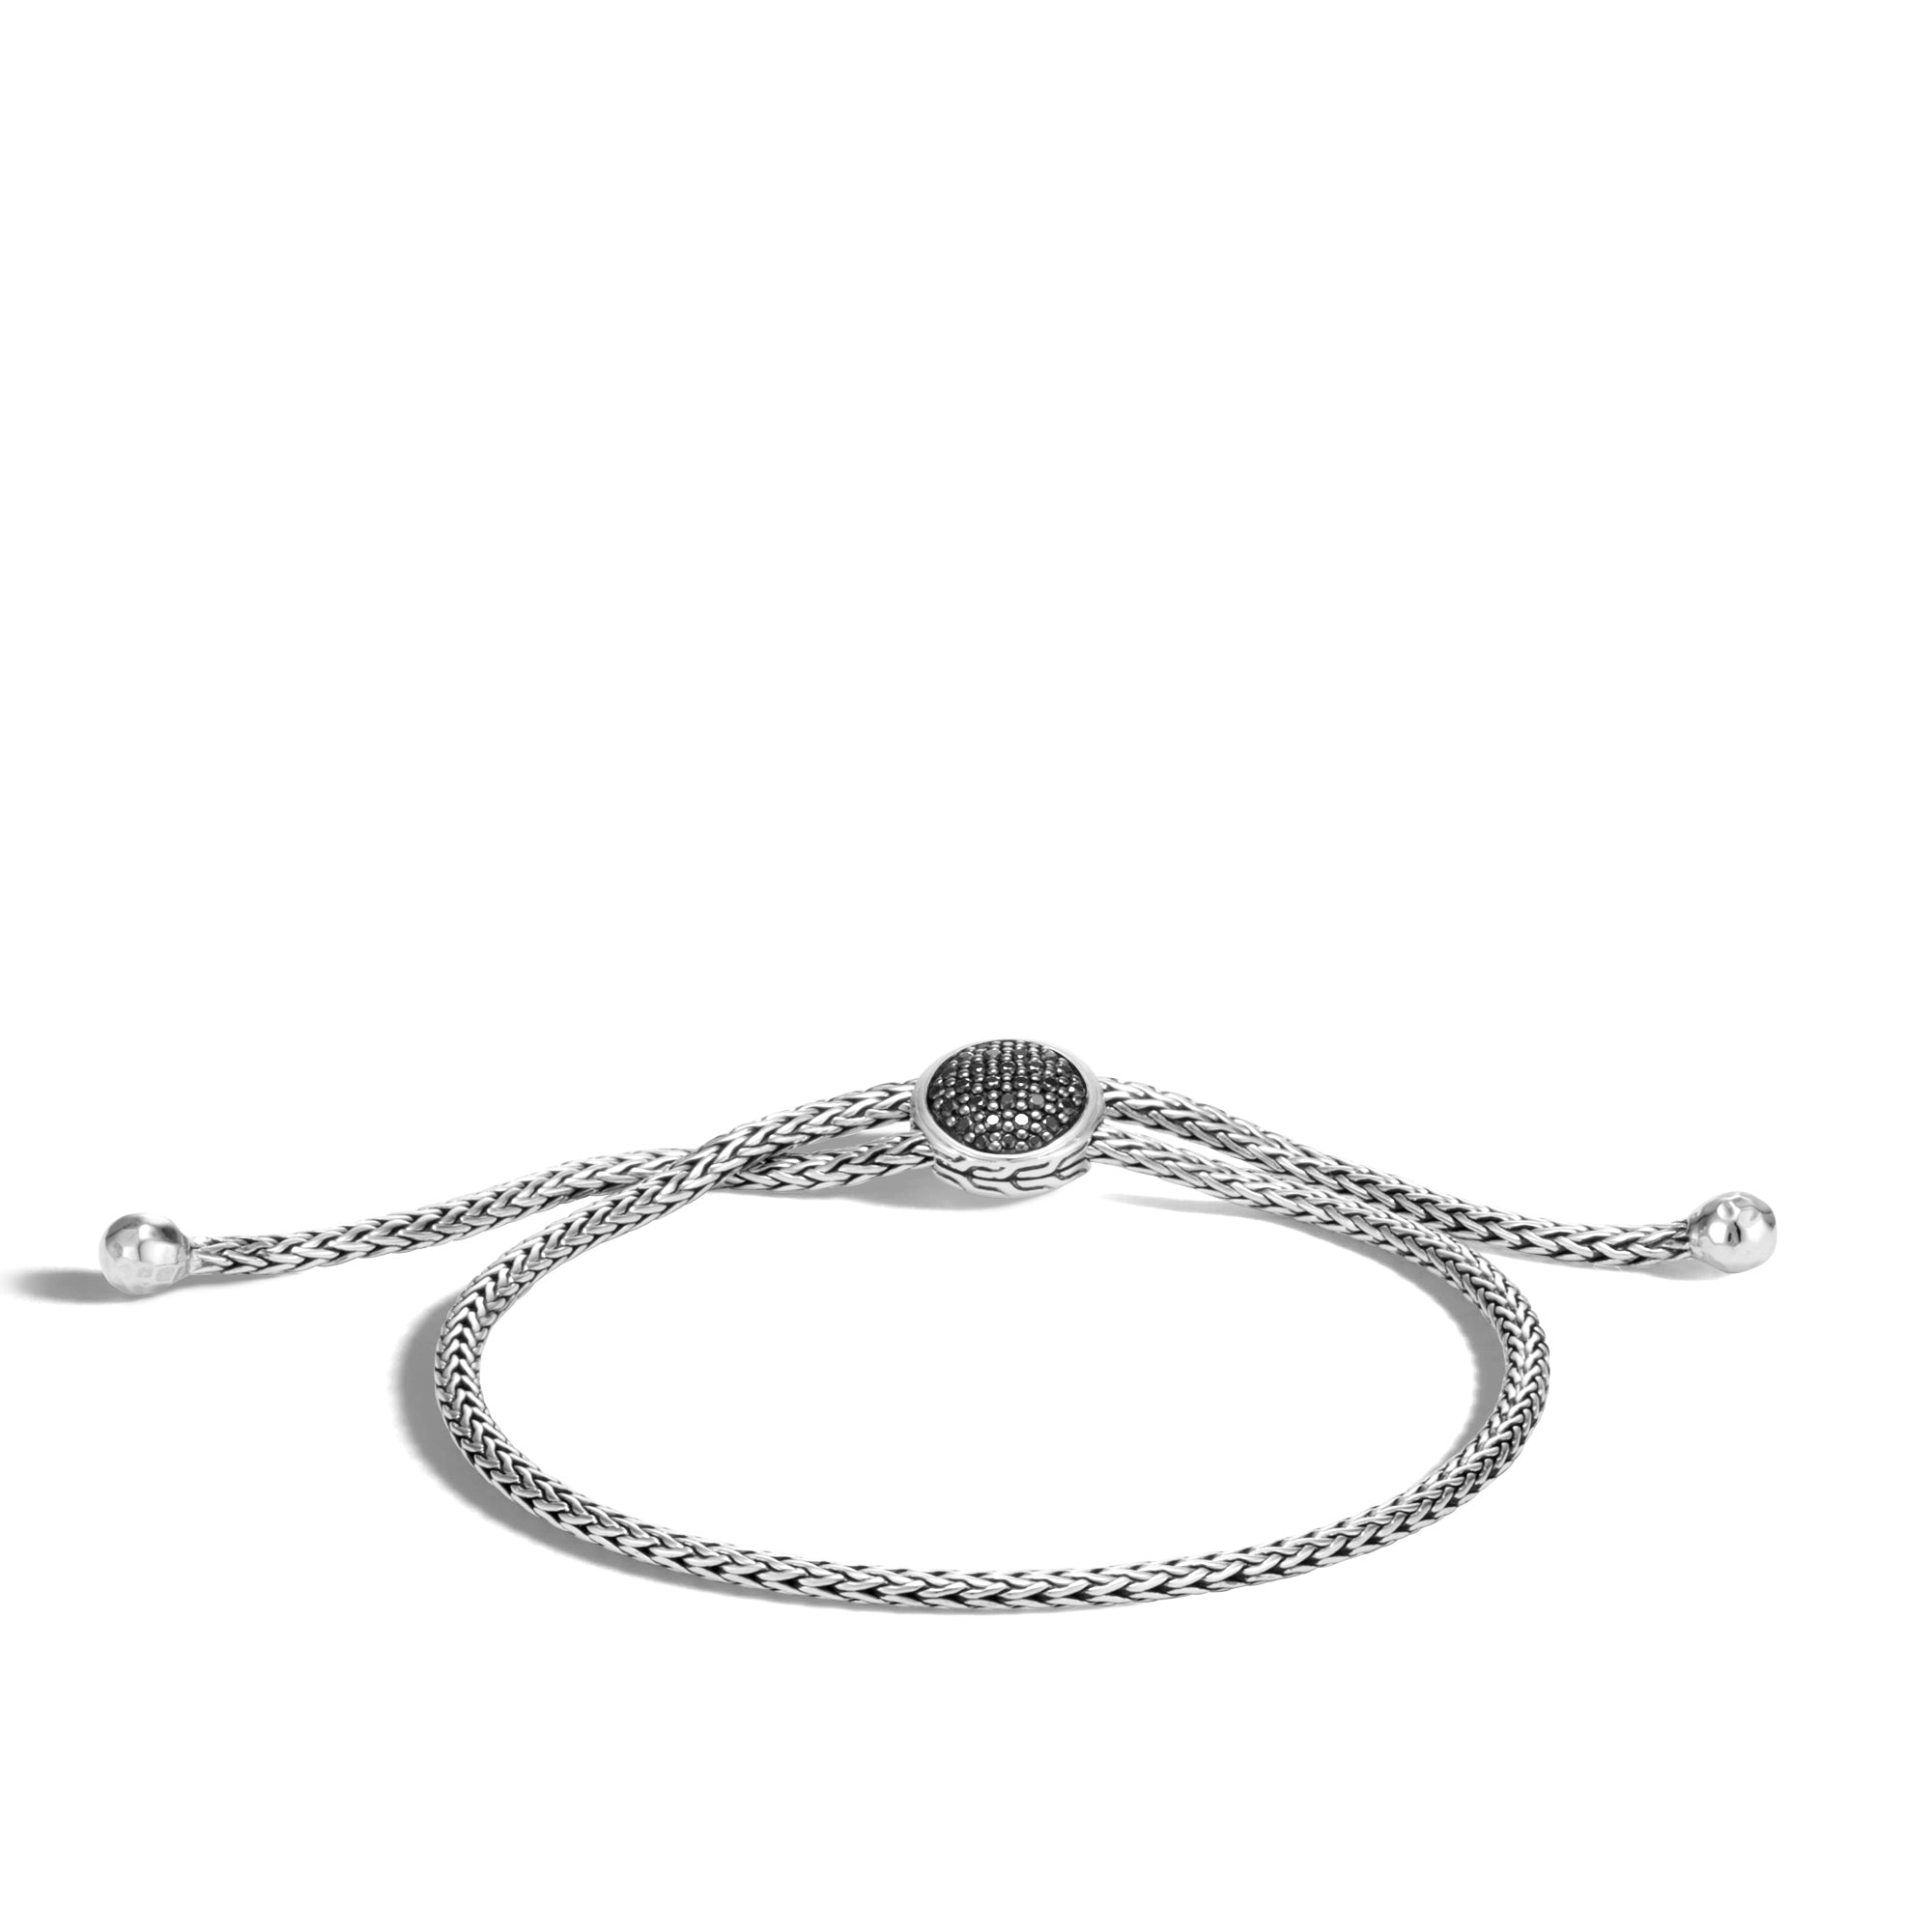 Classic Chain Pull Through Bracelet,Black Sapphire, Black Spinel